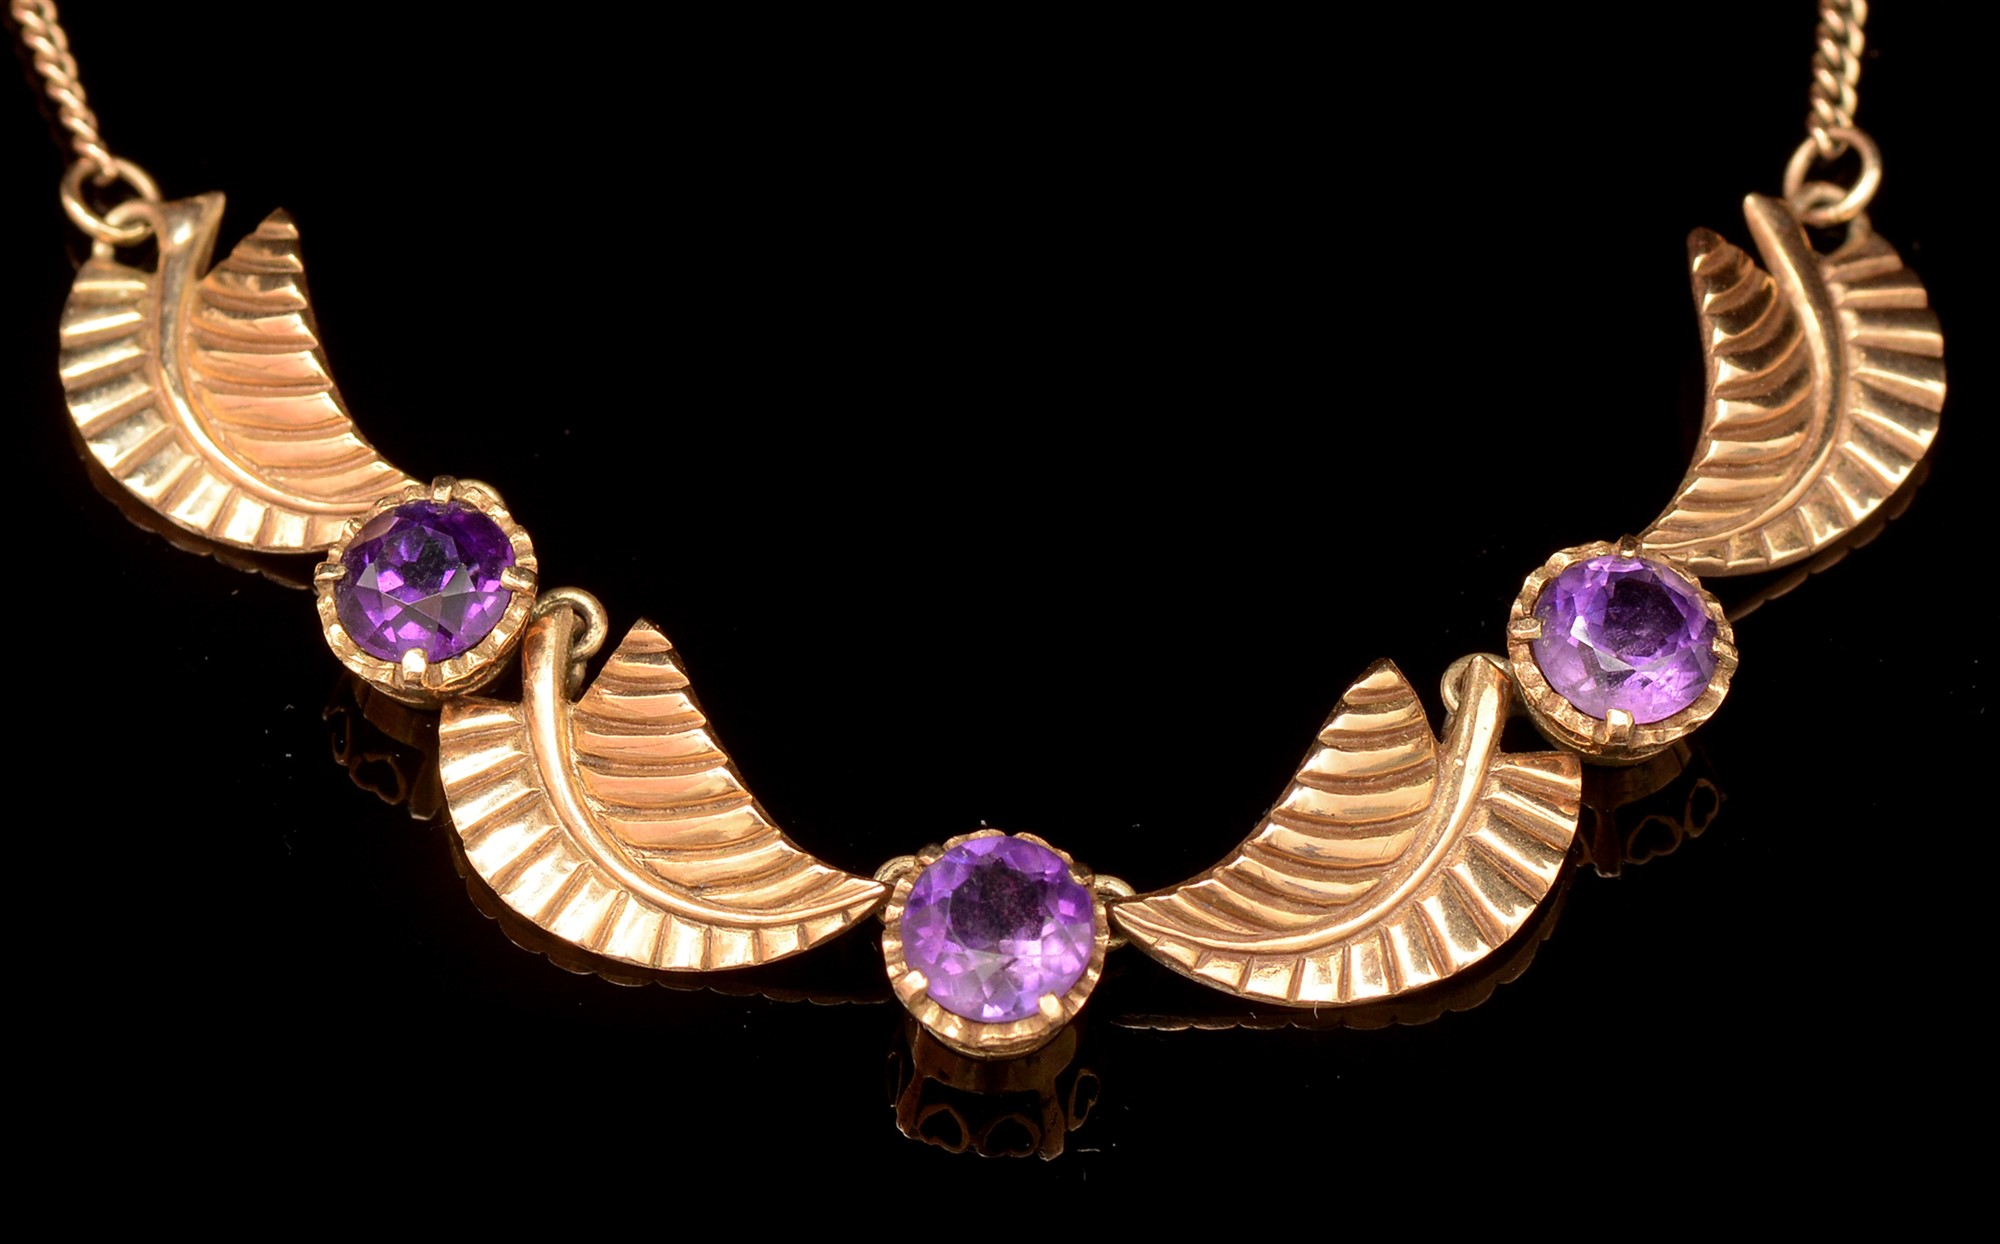 Lot 529 - Amethyst necklace and earrings